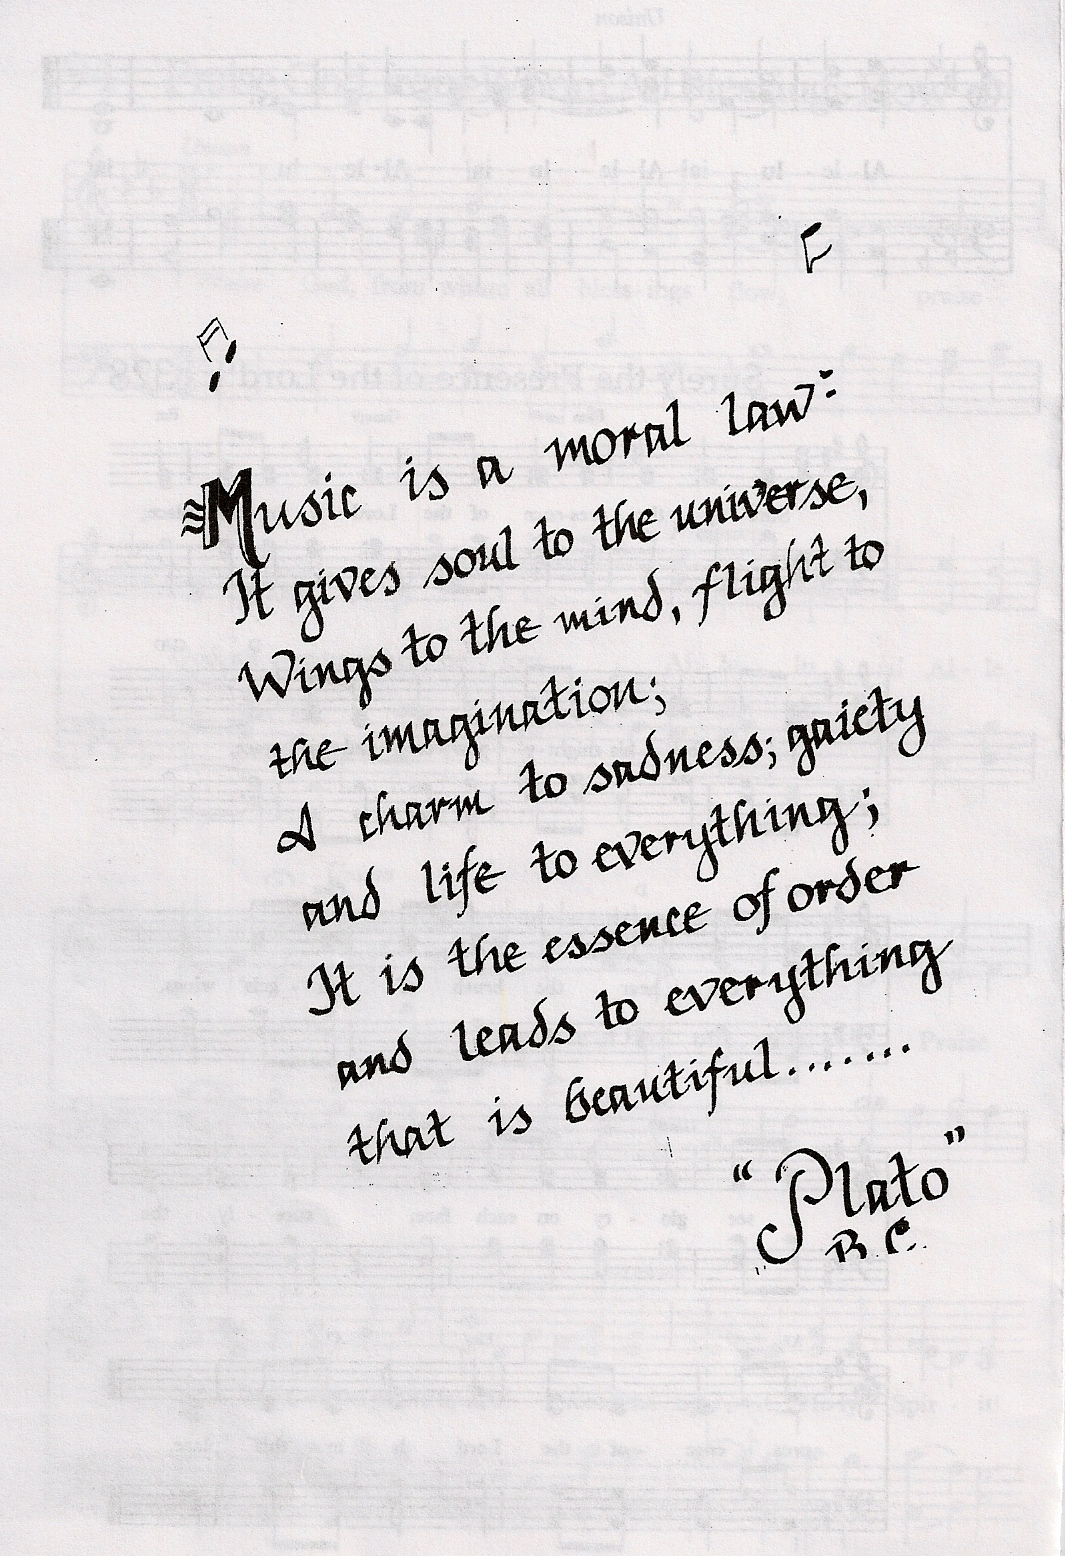 Music Is A Normal Law It Gives Soul To The Universe Wings To The